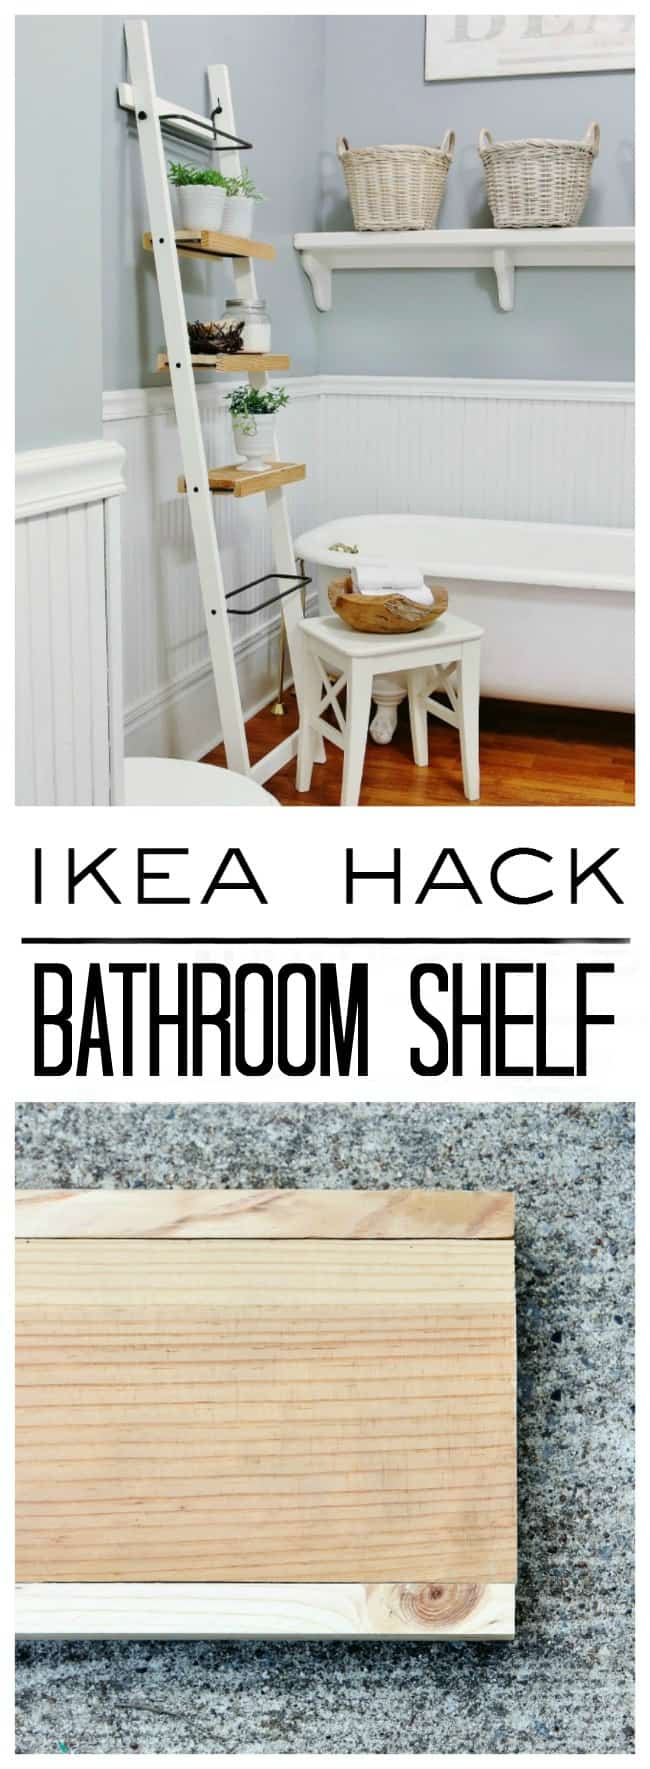 DIY IKEA Bathroom Shelf Hack  Thistlewood Farm